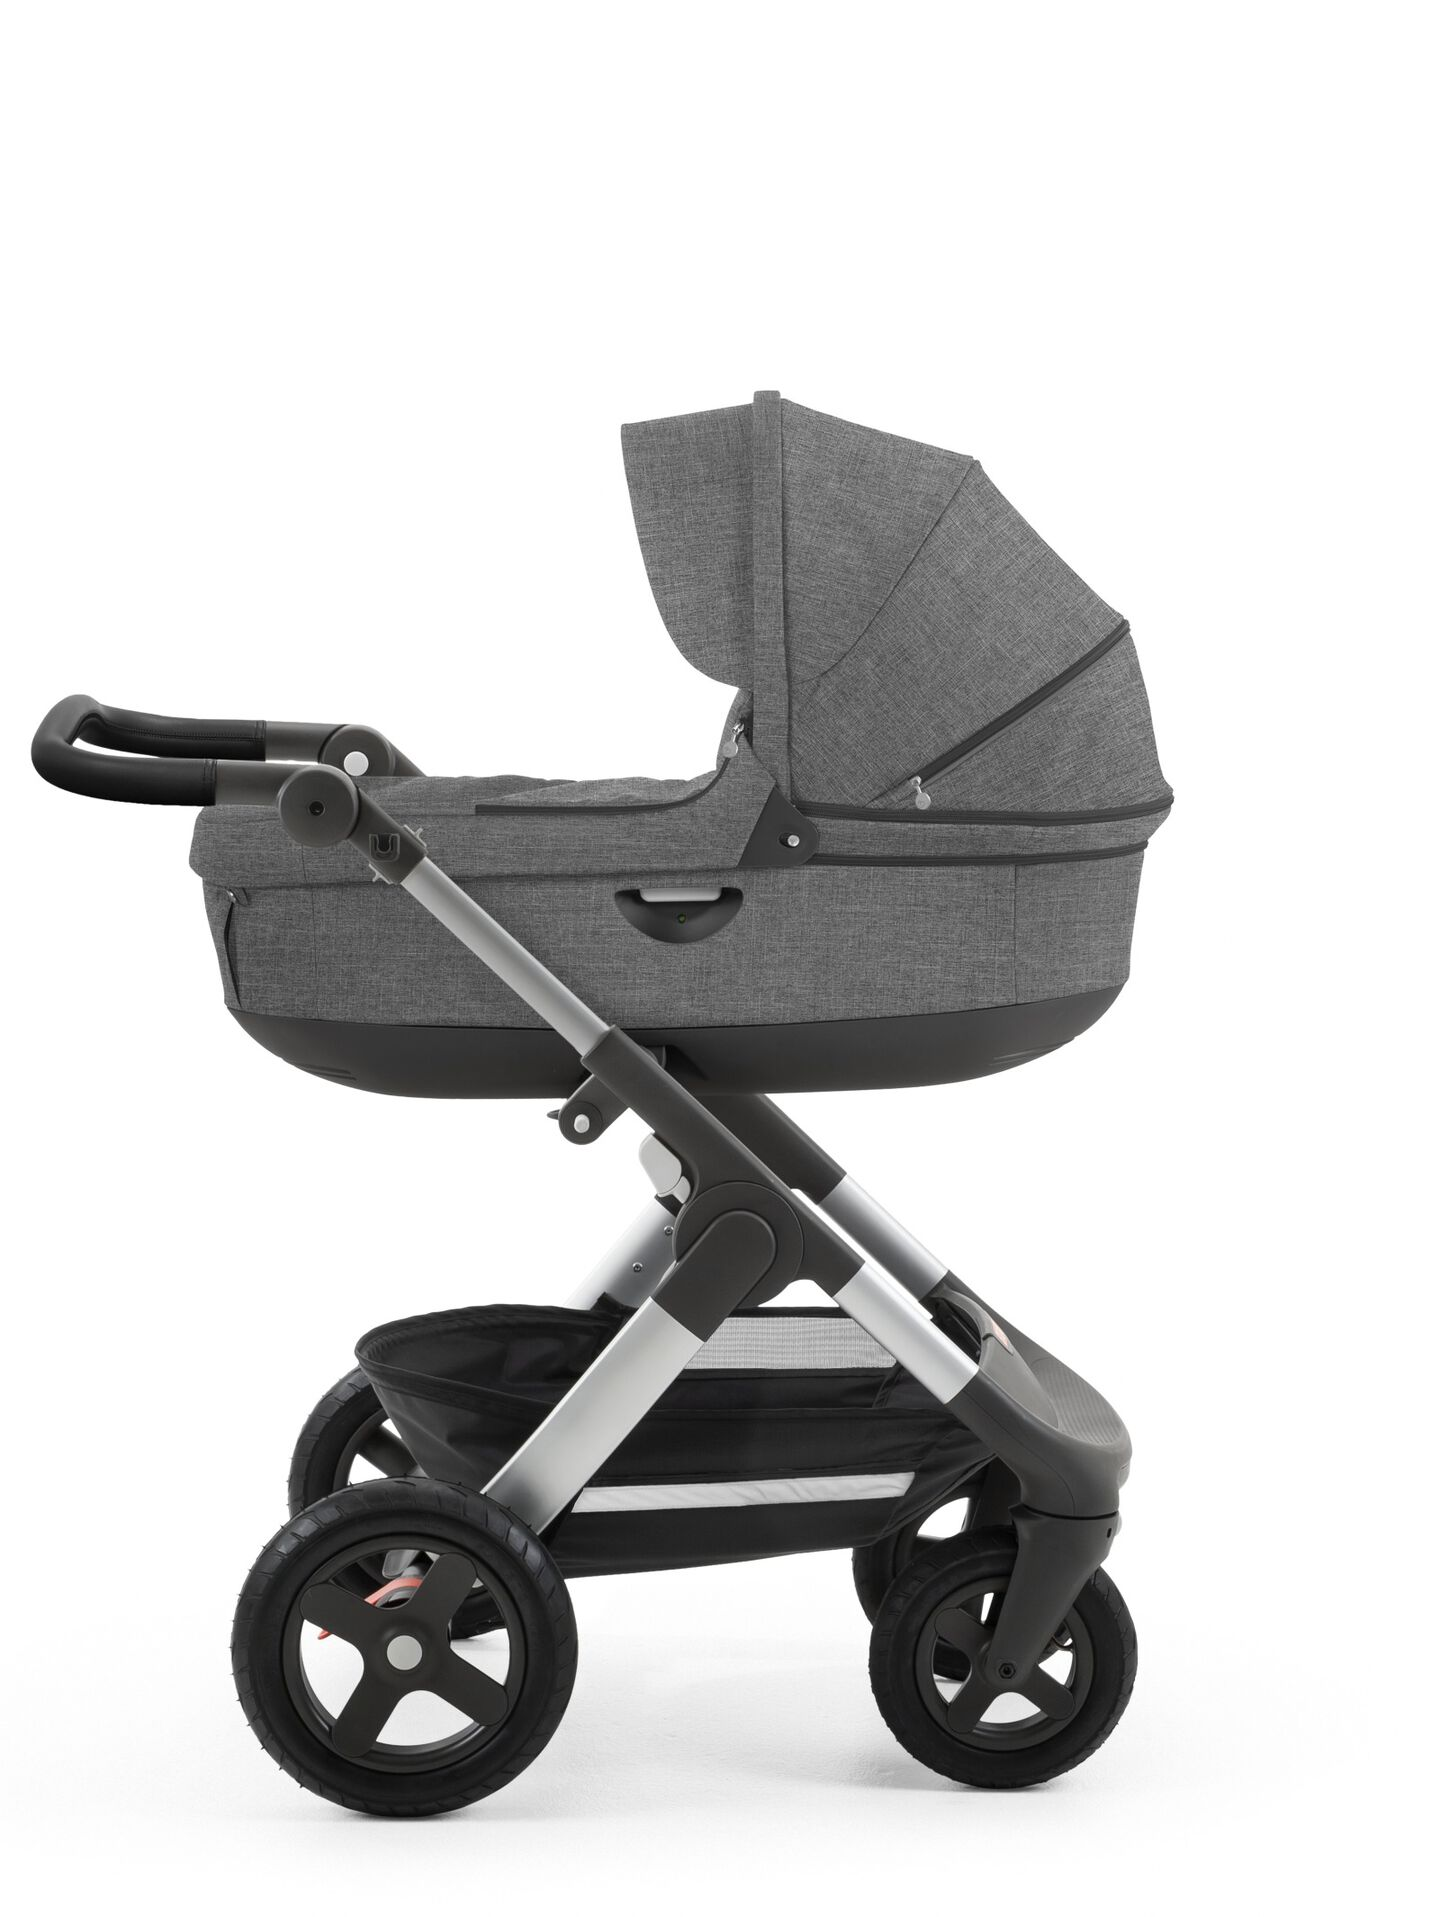 Stokke® Trailz™ with silver chassis  and Stokke® Stroller Carry Cot, Black Melange. Leatherette Handle.